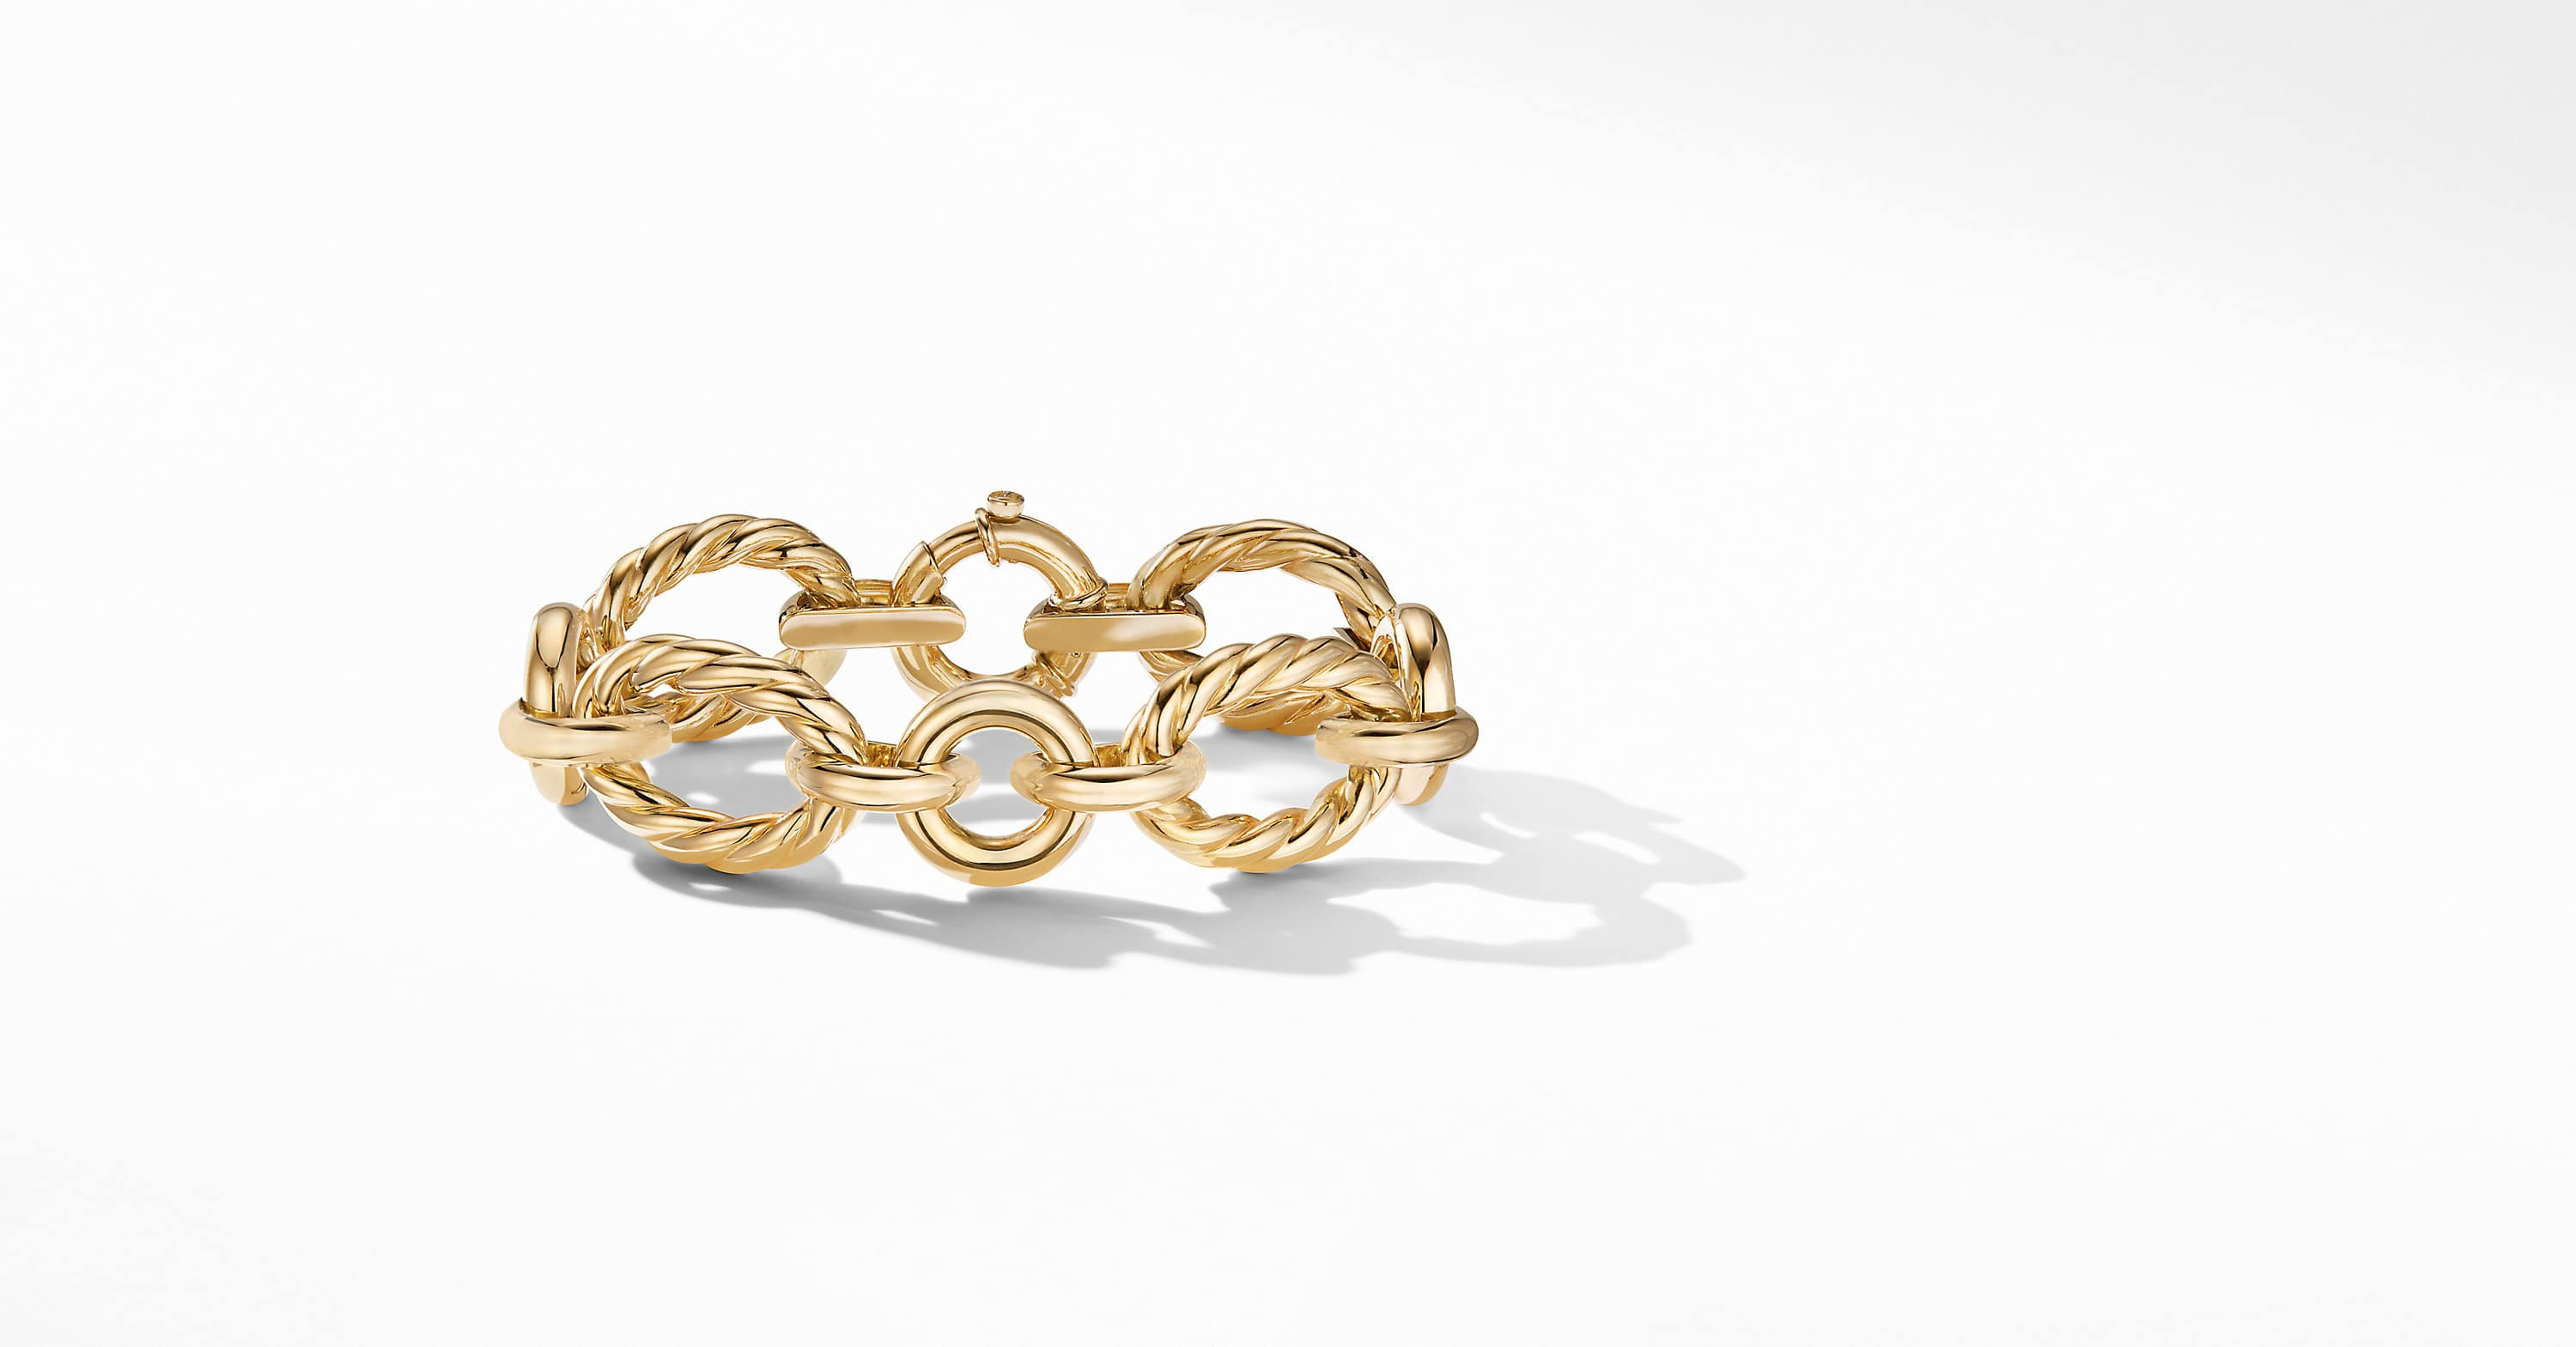 Cable and Smooth Chain Link Bracelet in 18K Yellow Gold, 20mm